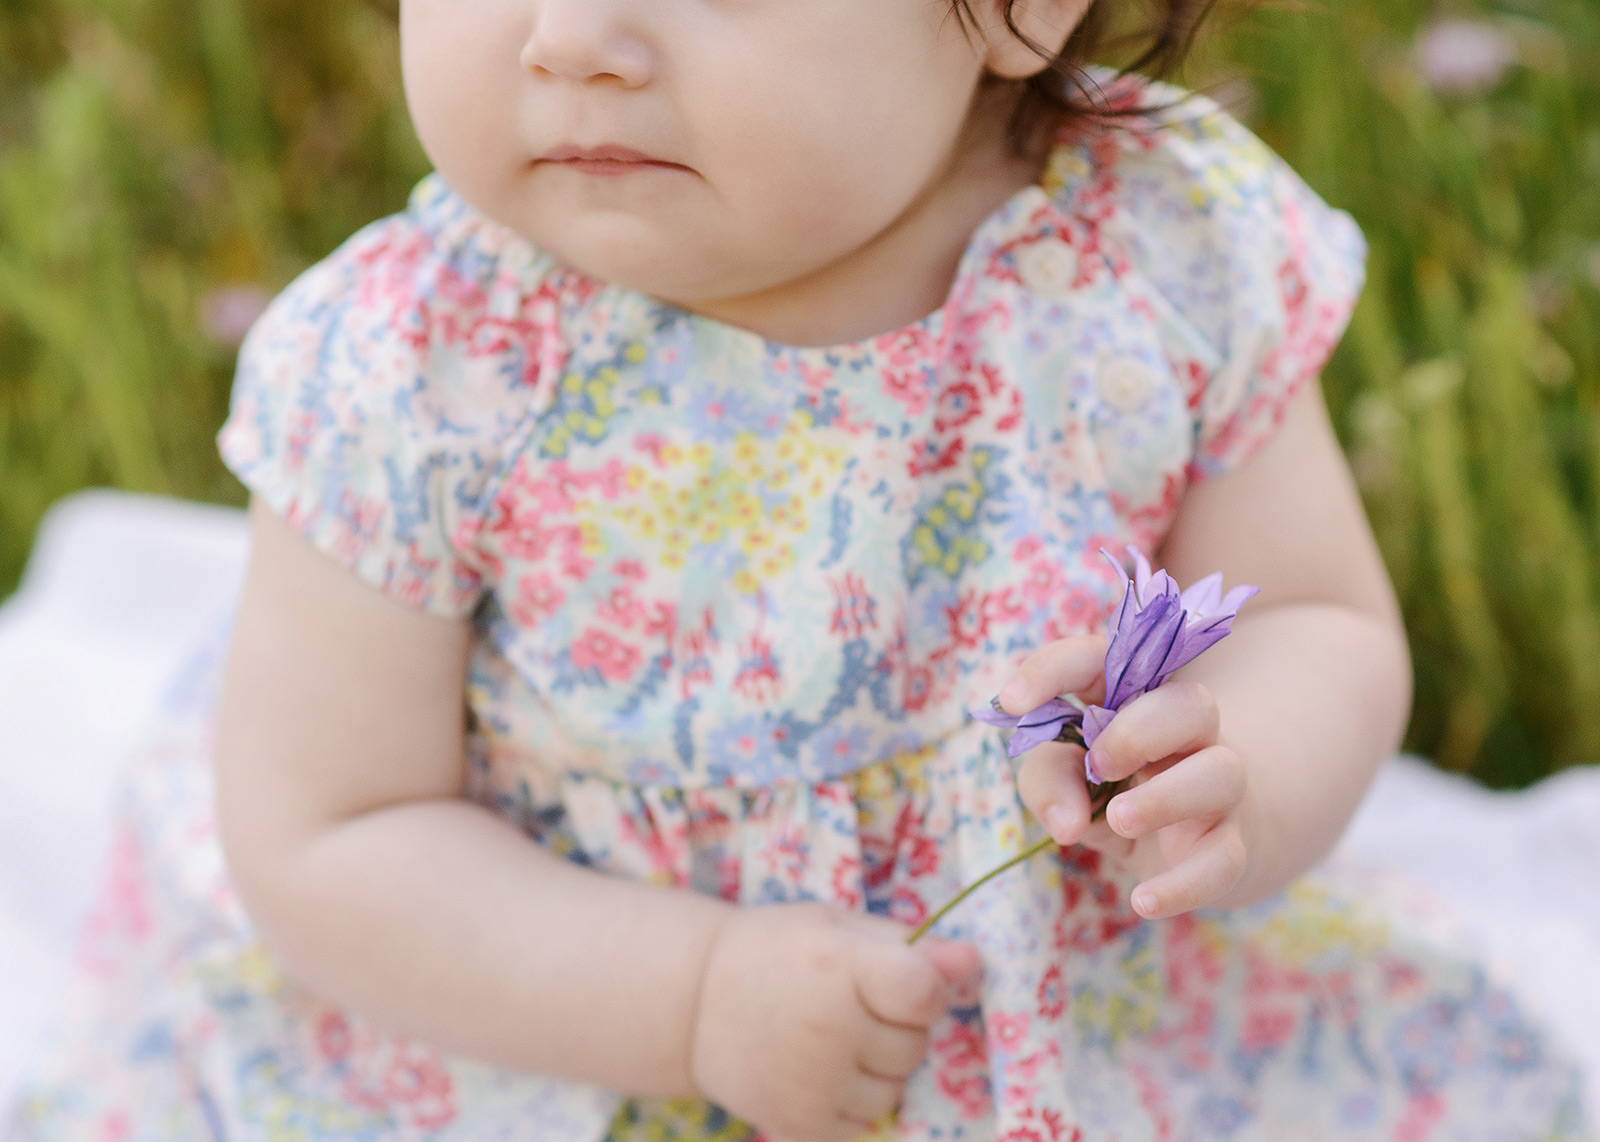 Baby in floral dress holding purple wildflower sitting in grass on a spring day in Folsom